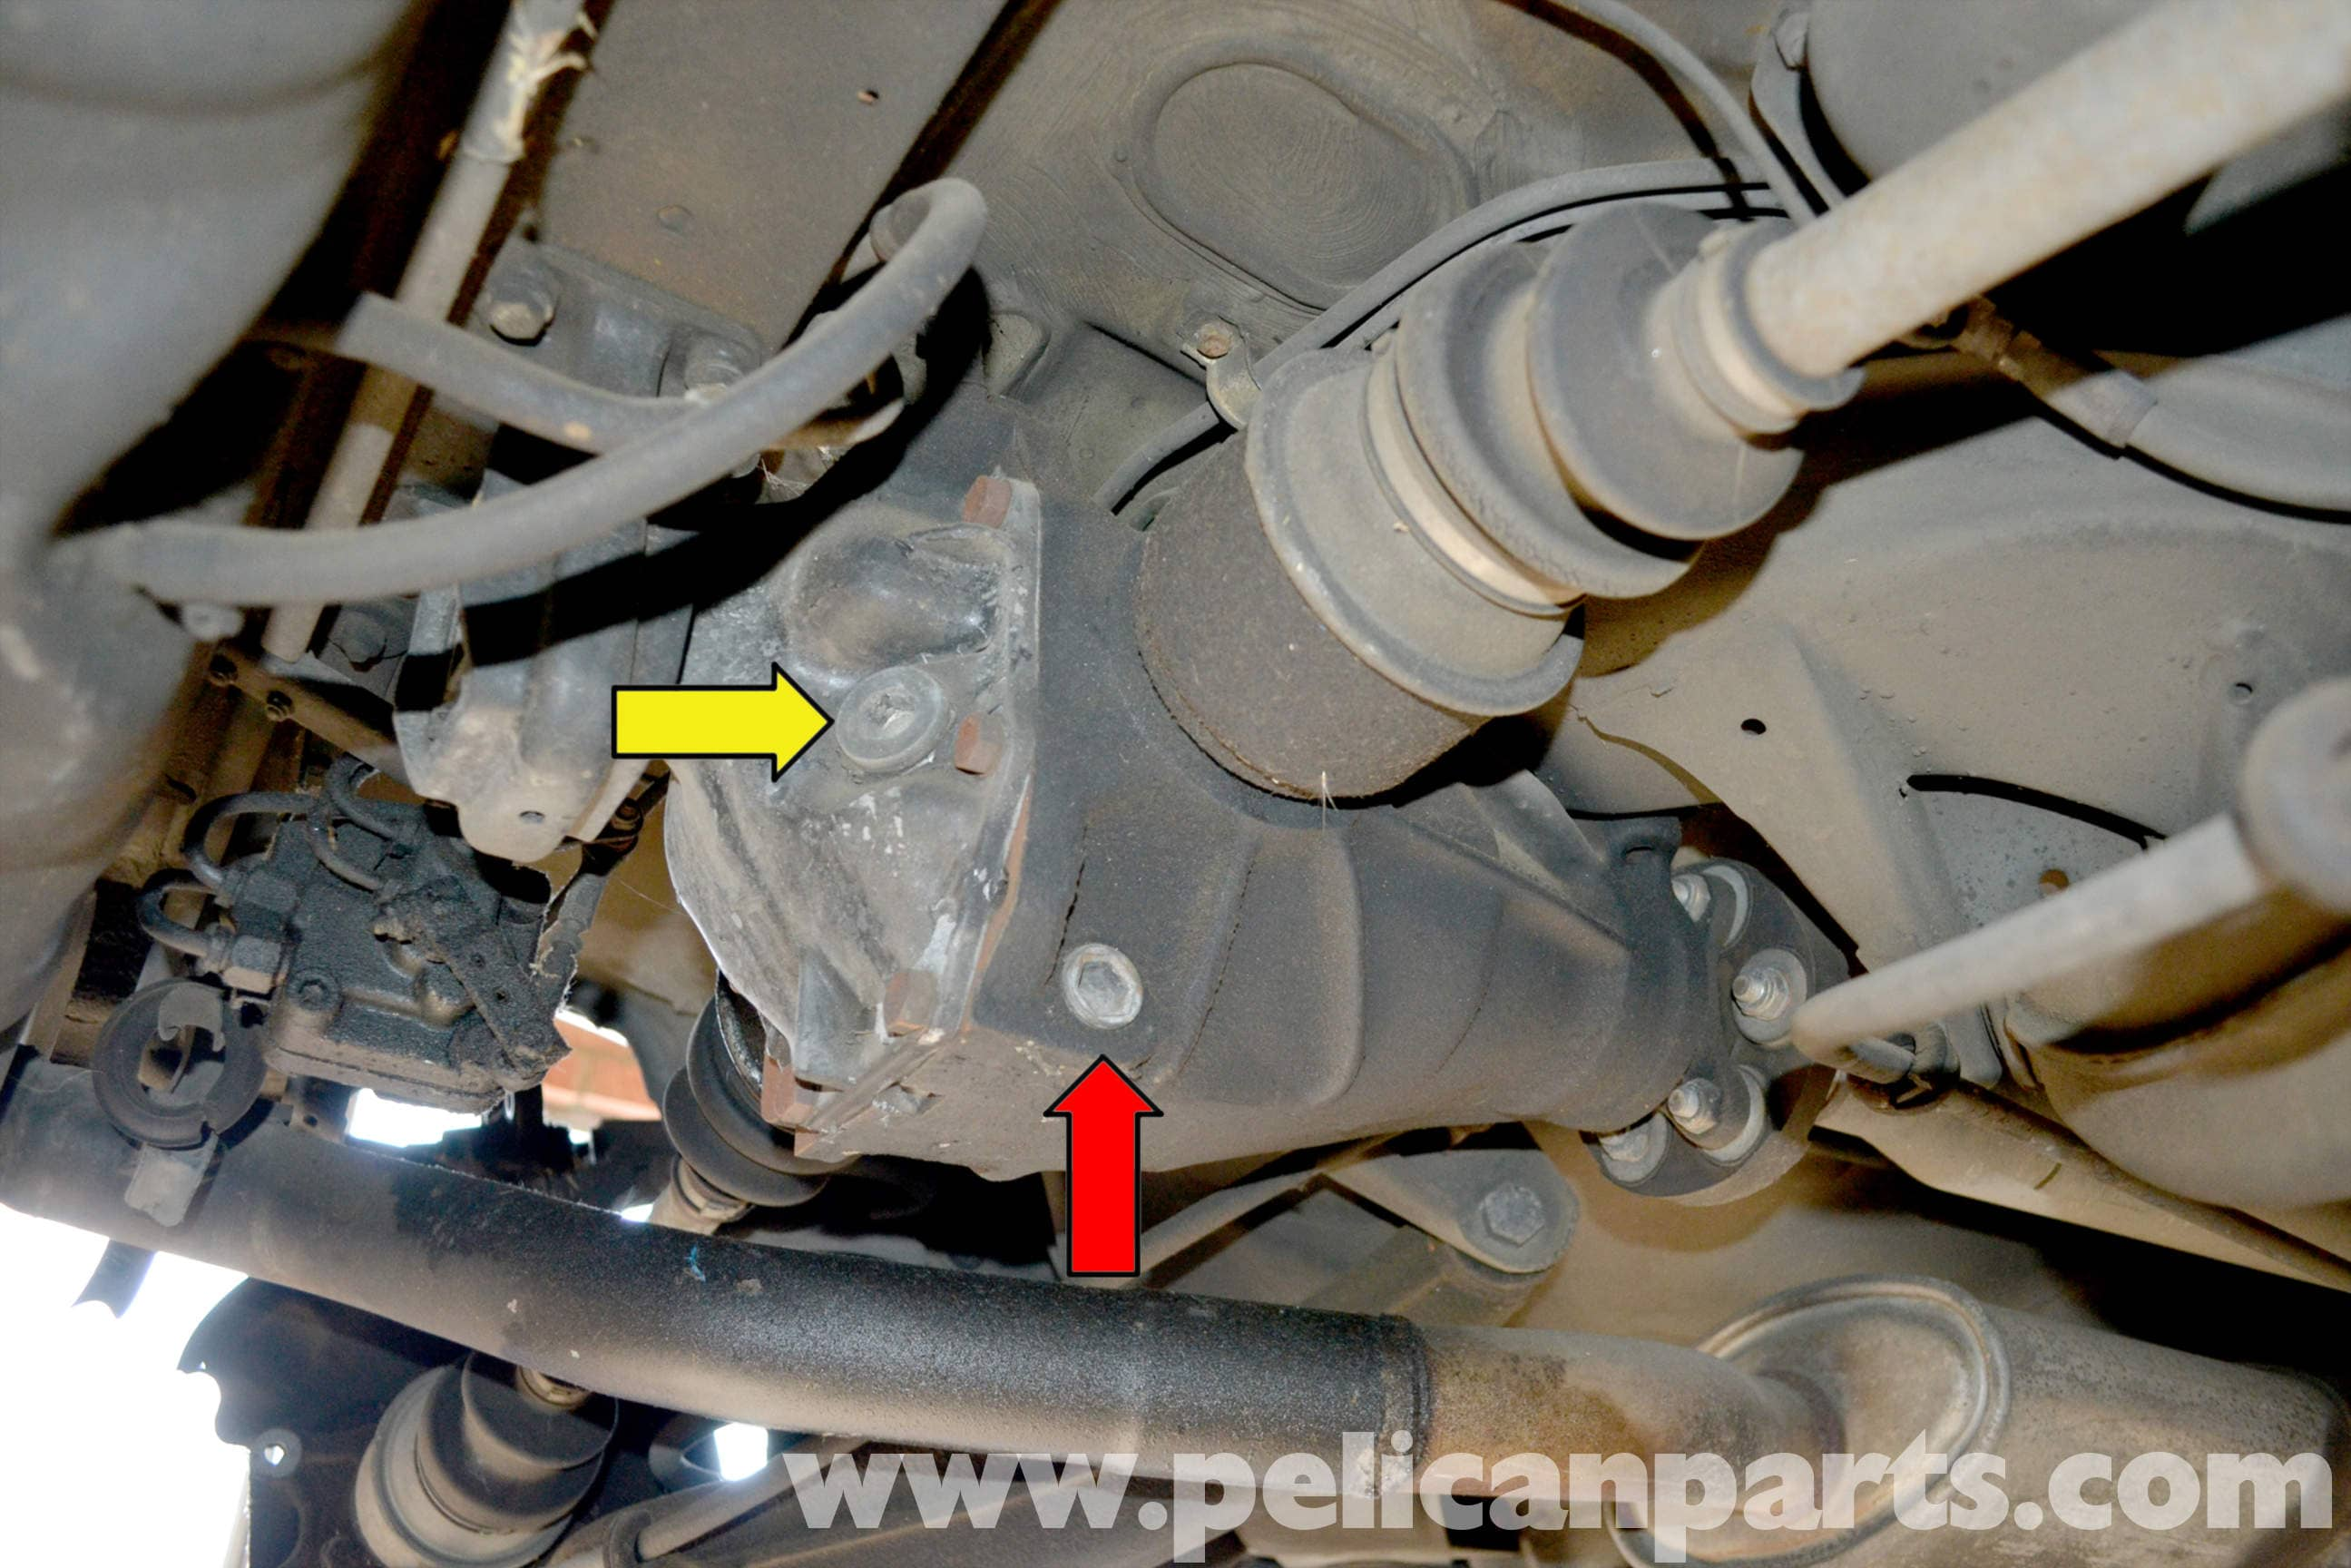 Mercedes-Benz W123 Axle Replacement | W123 (1977-1985